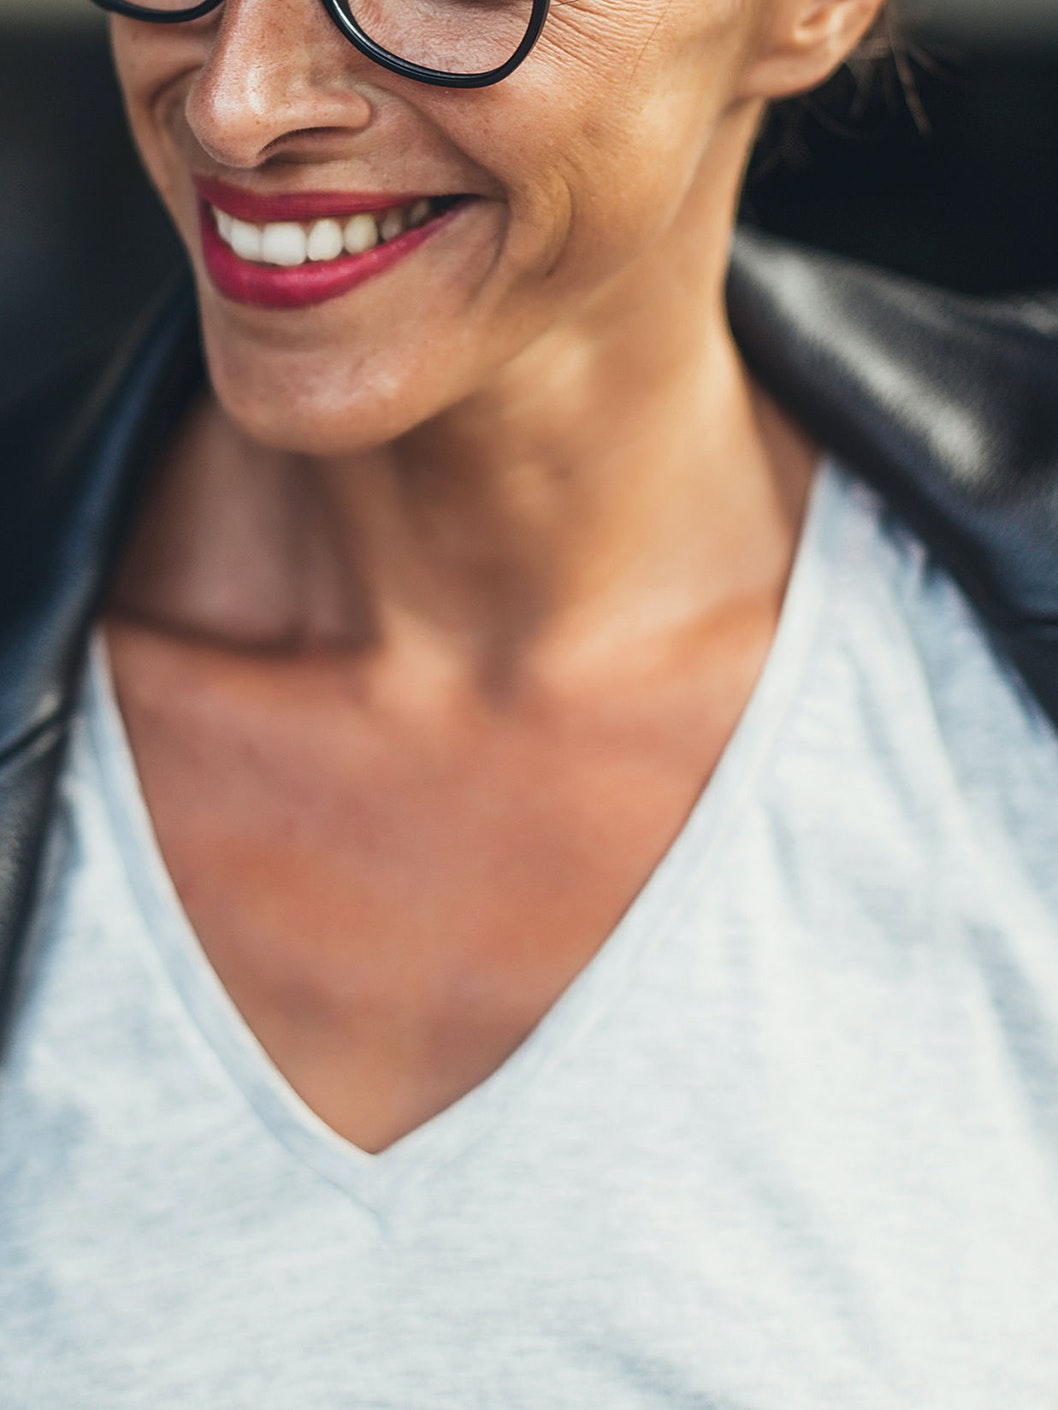 smiling woman's face and neck nasolabial folds